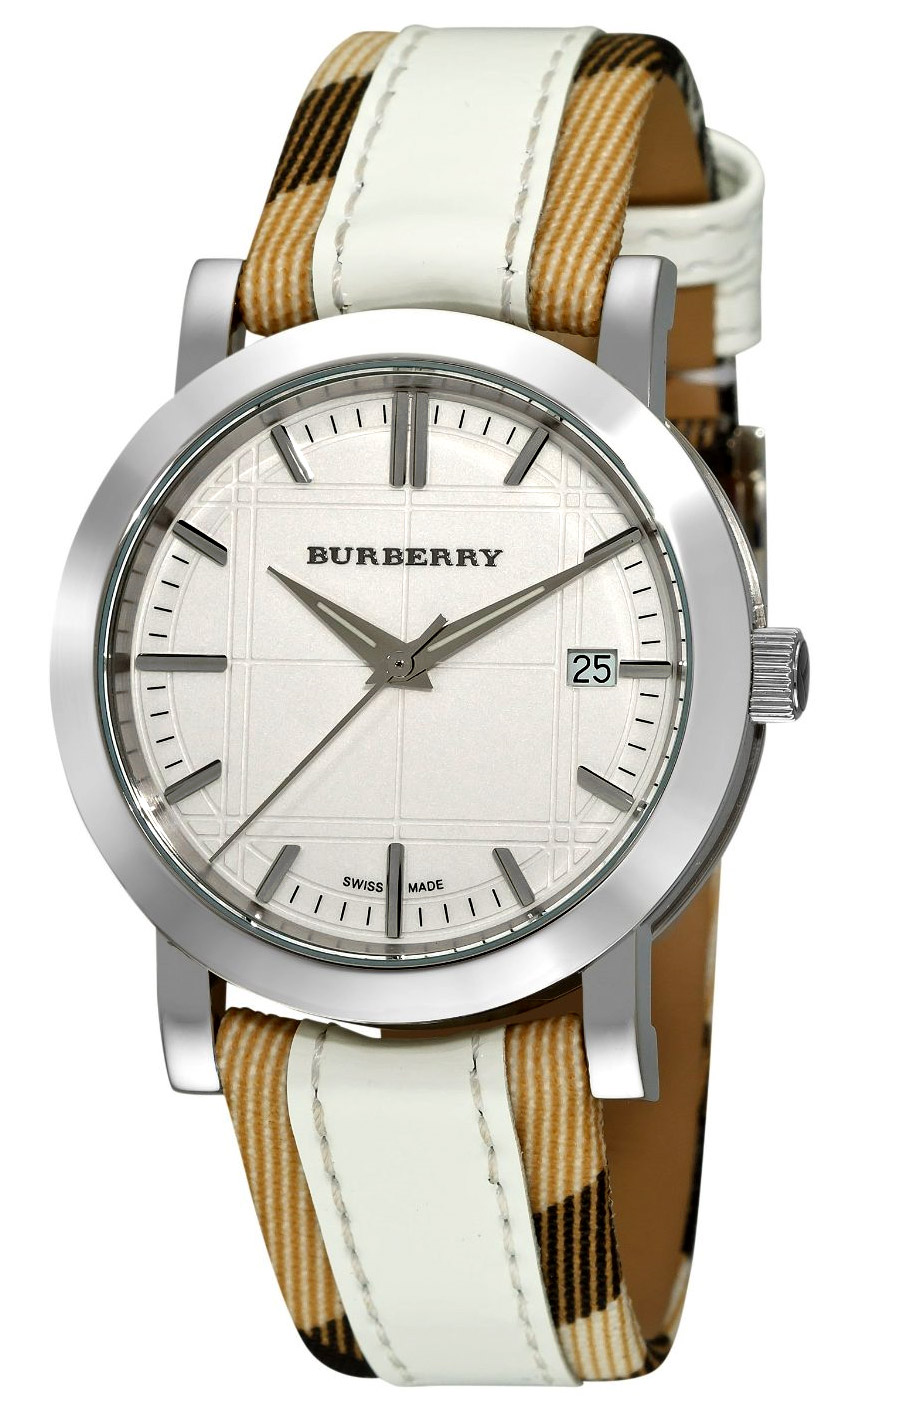 Burberry round 3 hand date unisex watch model bu1379 for Burberry watches